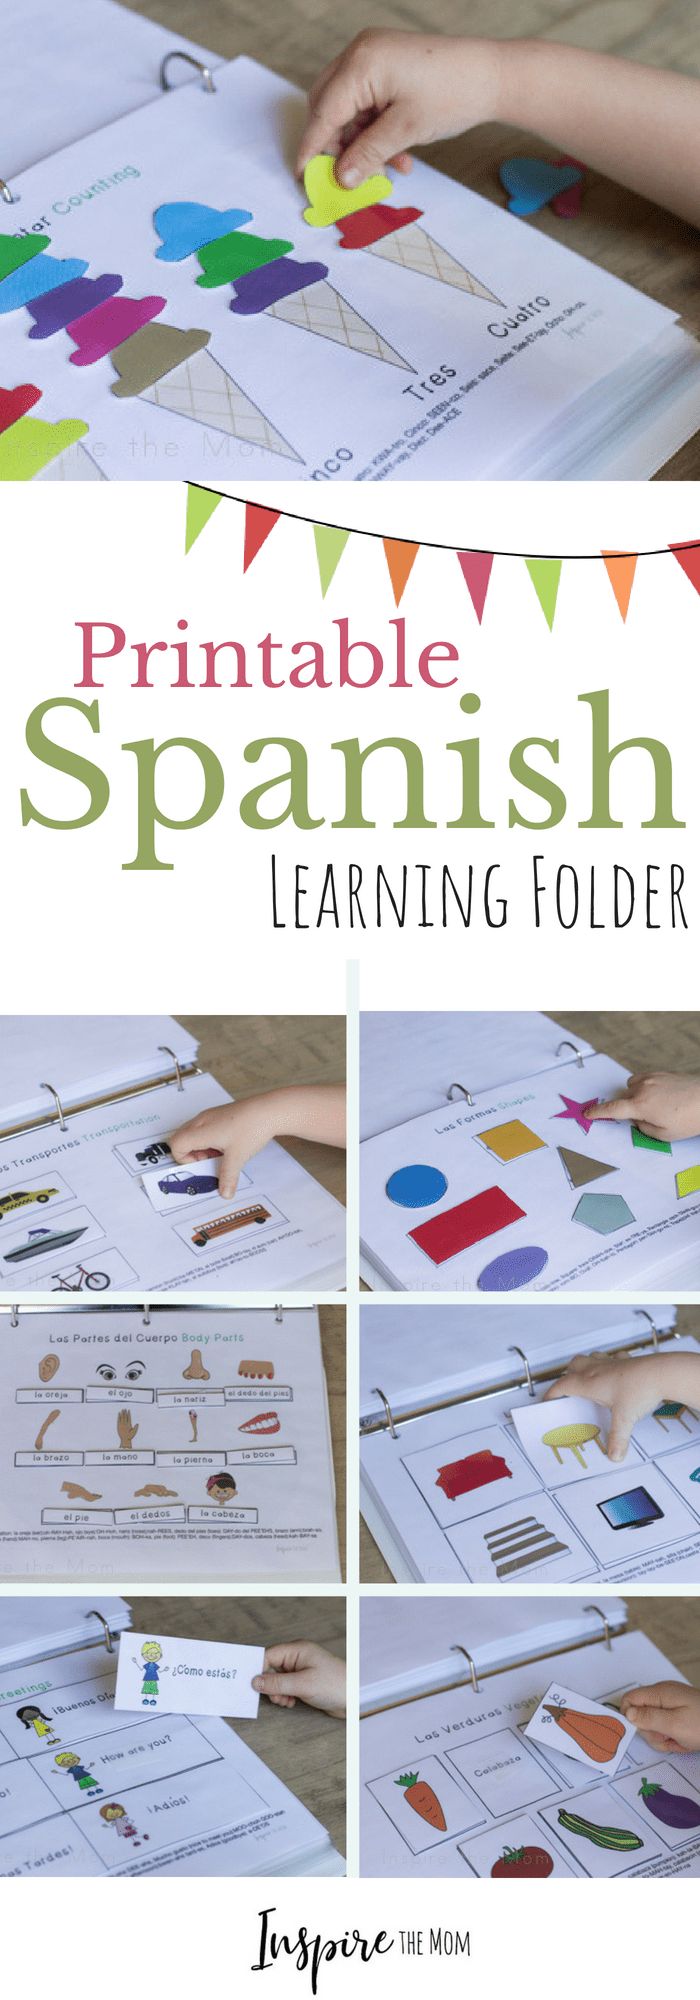 printable spanish interactive learning folder homeschooling by subject learning spanish for. Black Bedroom Furniture Sets. Home Design Ideas